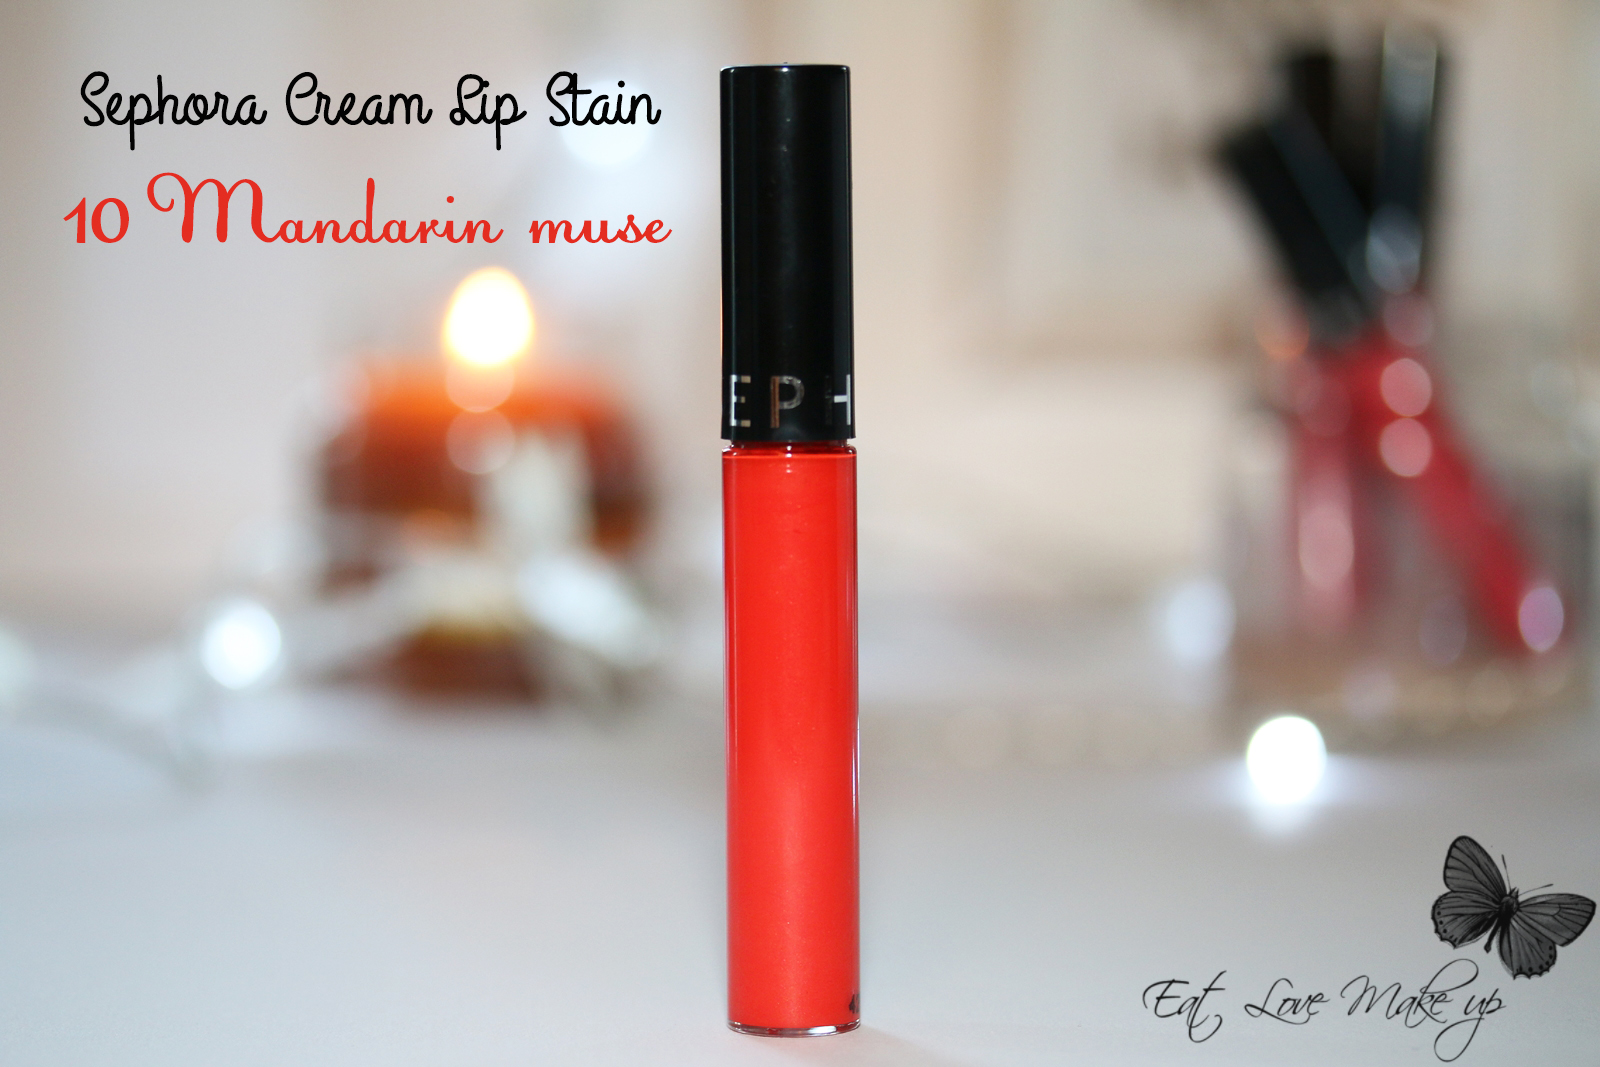 Sephora Cream Lip Stain